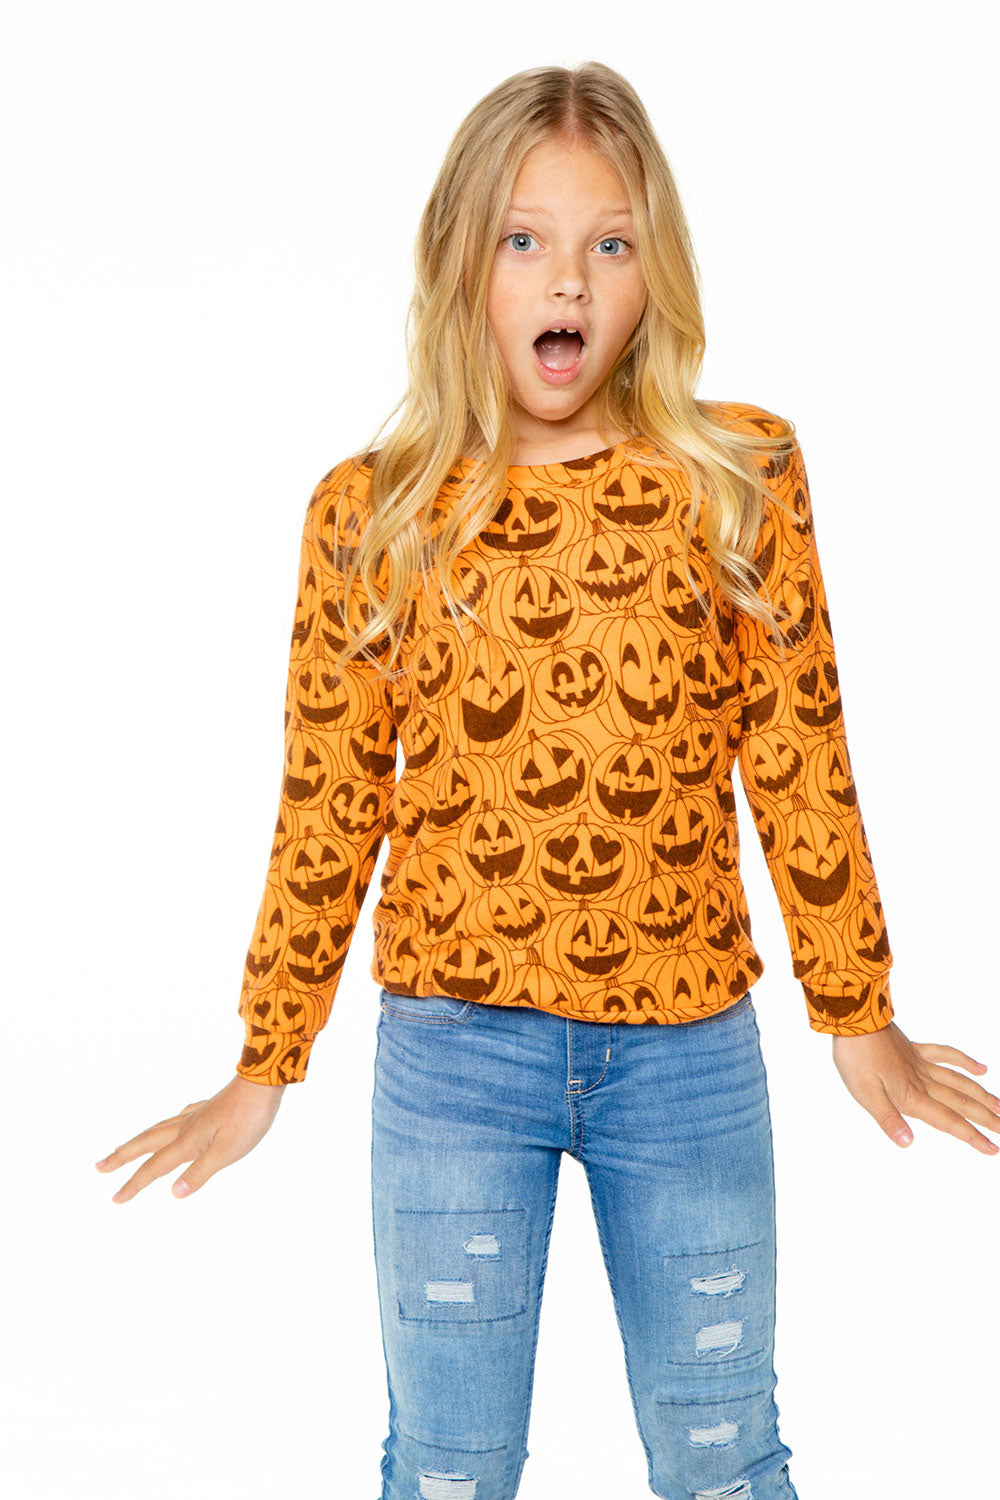 Happy Jack-O-Lanterns GIRLS chaserbrand4.myshopify.com